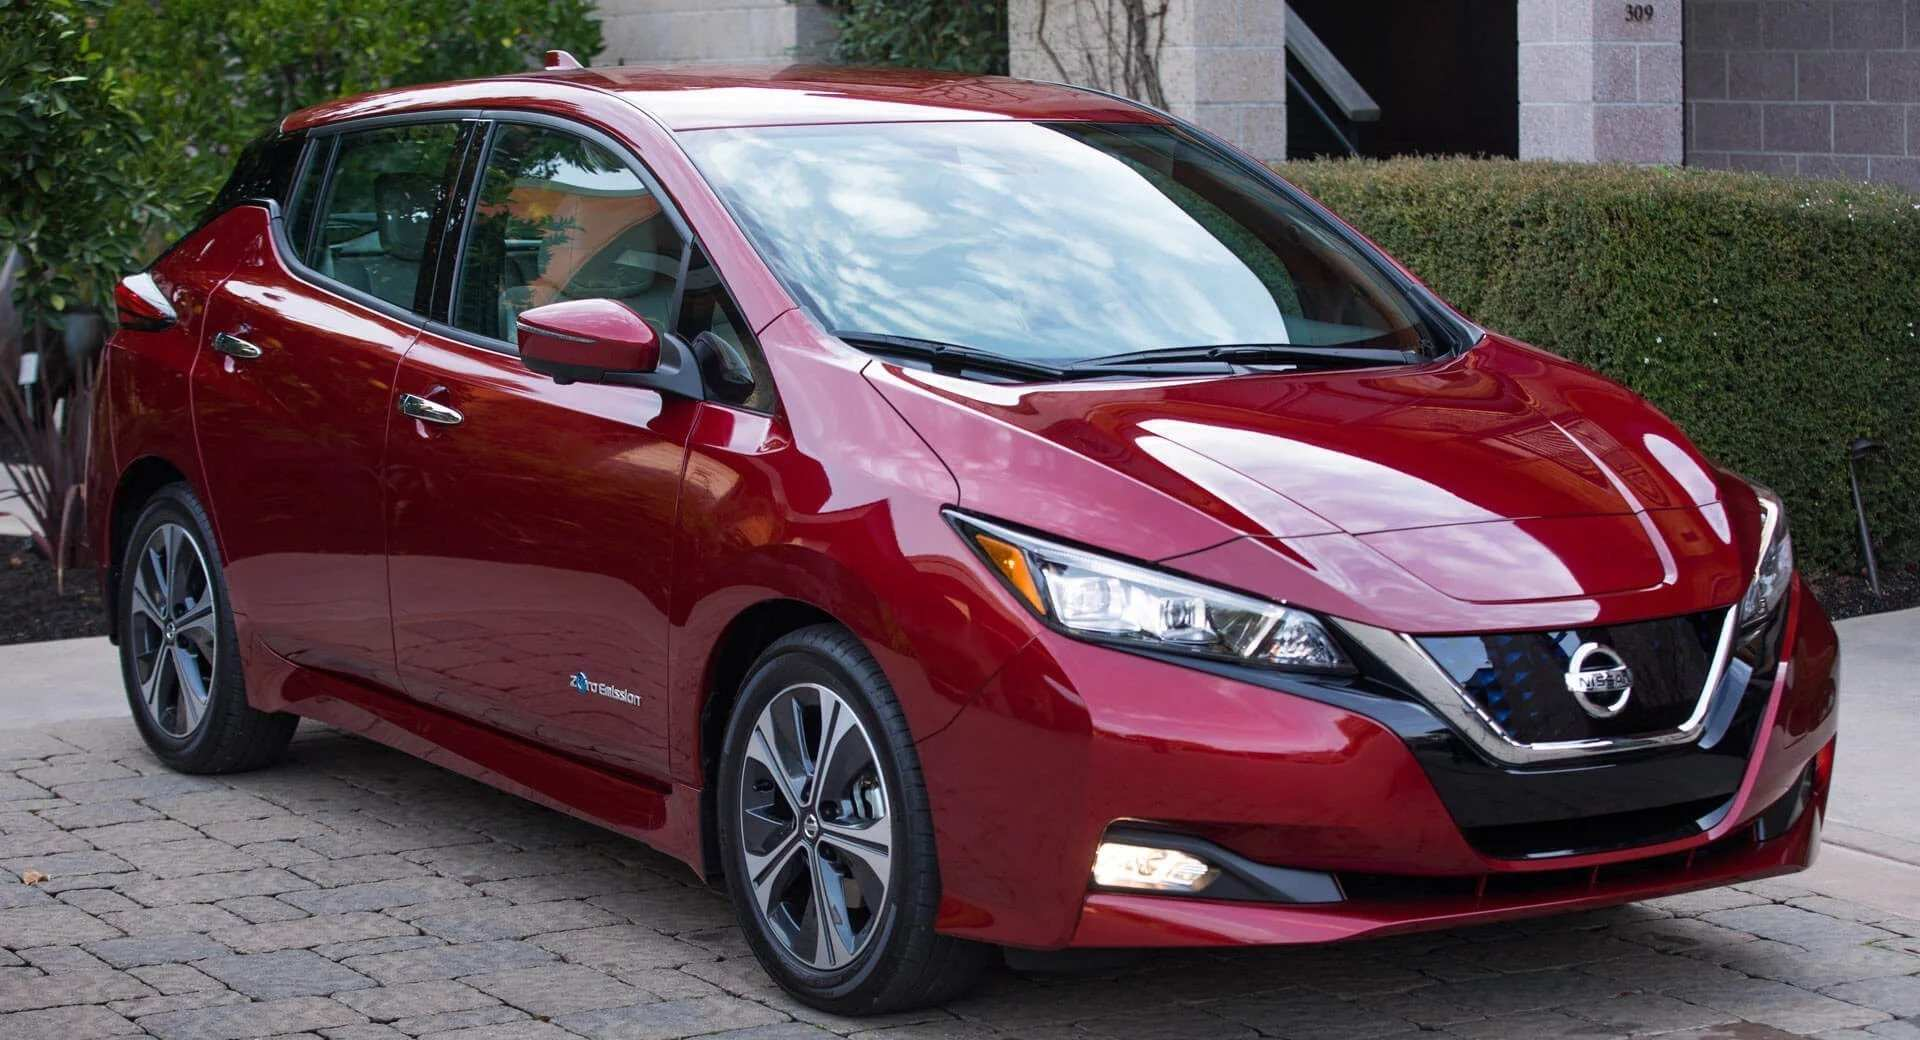 66 Gallery of 2020 Nissan Leaf E Plus Ratings with 2020 Nissan Leaf E Plus